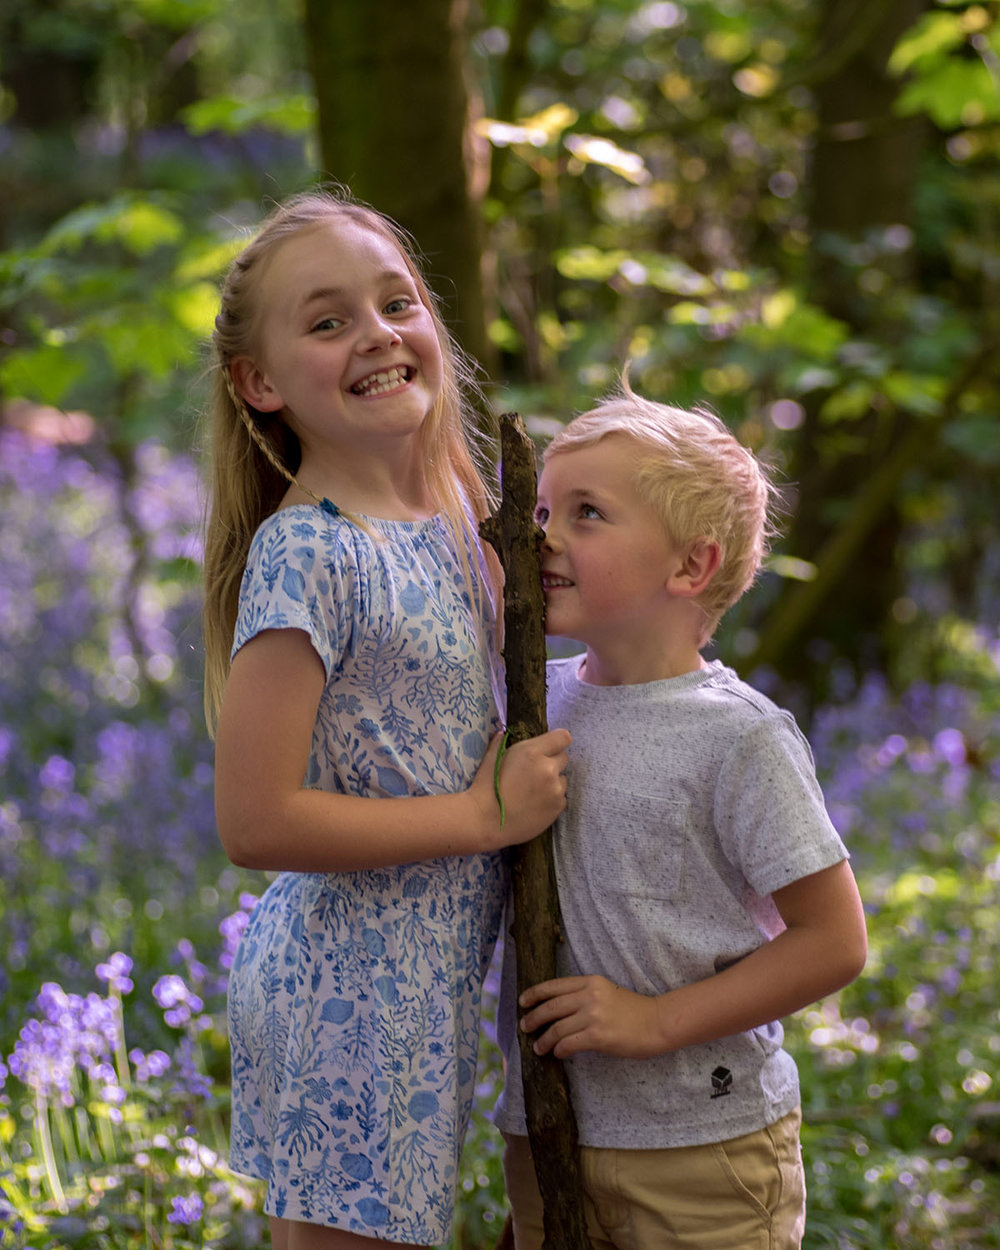 A family photo shoot in Oldmoor woods, Nottinghamshire. Here the kids are playing with a stick.Nottingham family photography